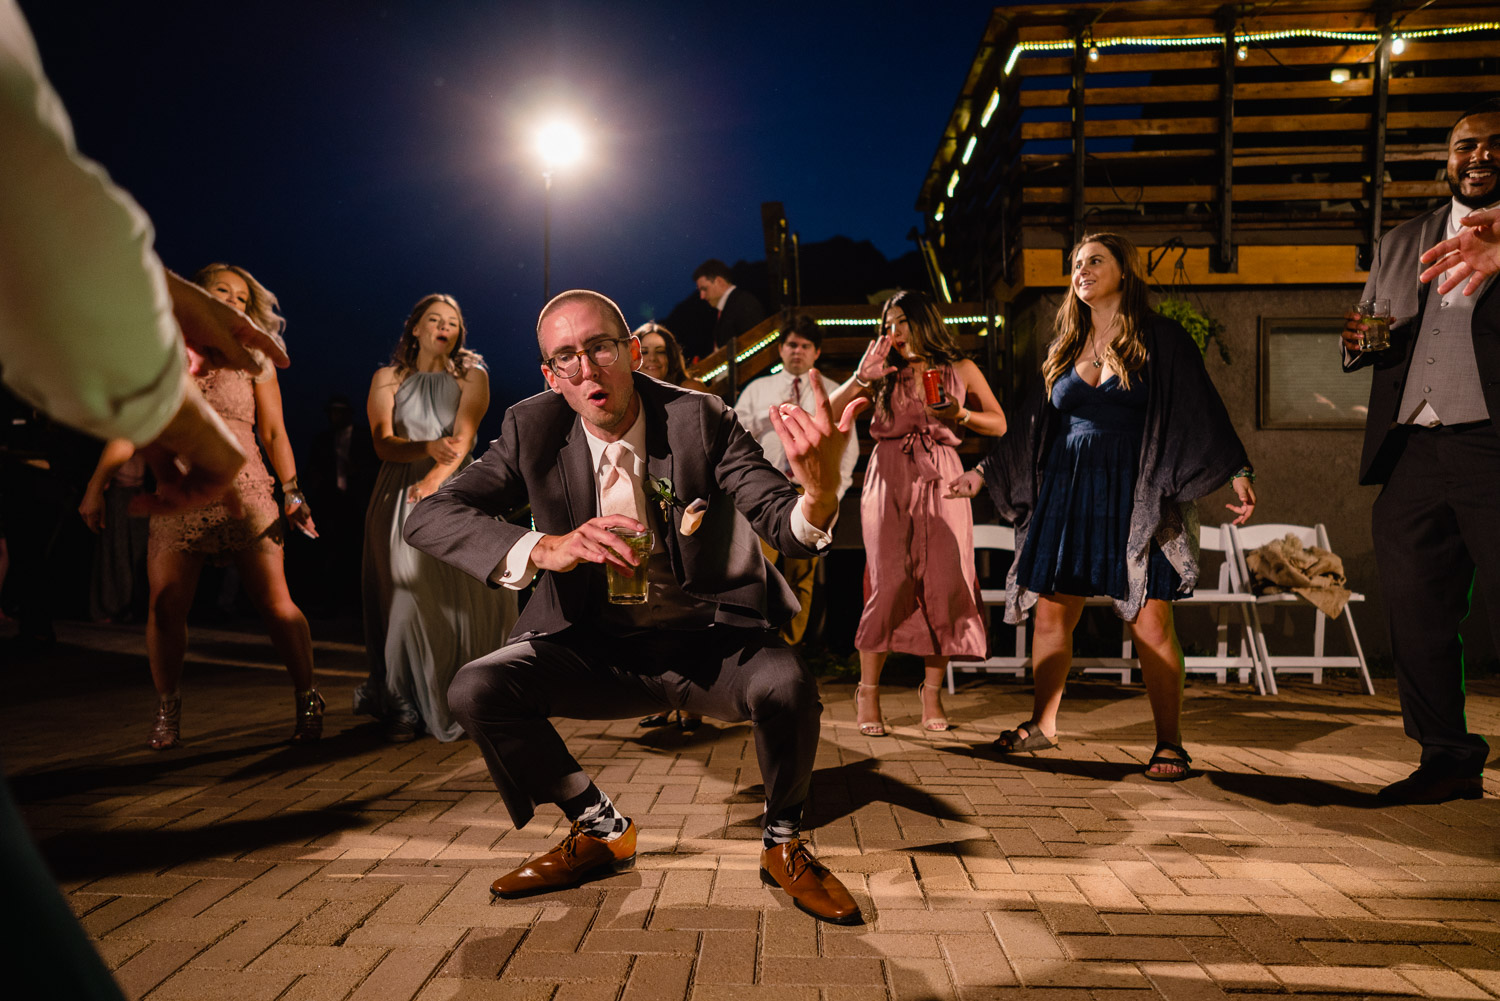 guests dancing on deck outside at night wedding